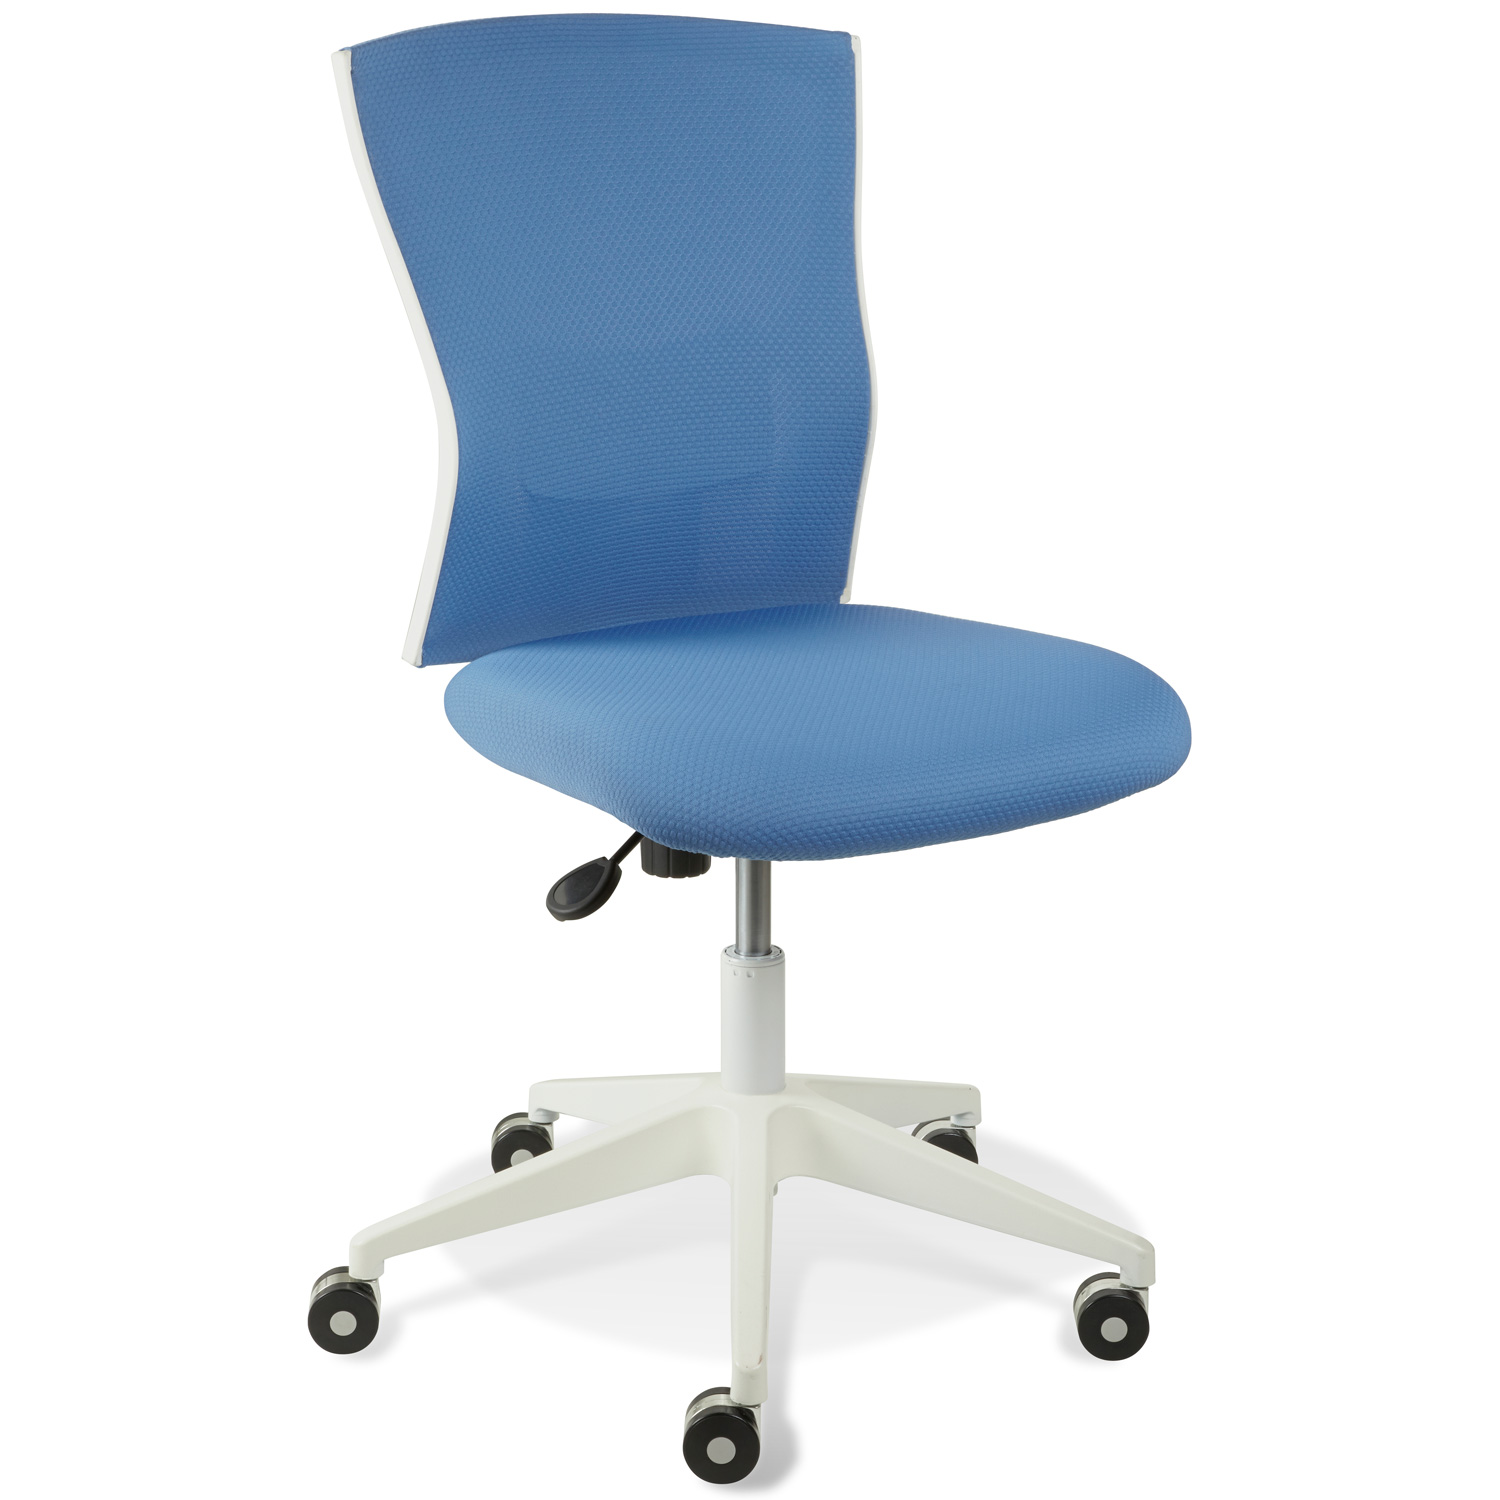 Sanne Office Chair - Blue Mesh Back & Fabric Seat